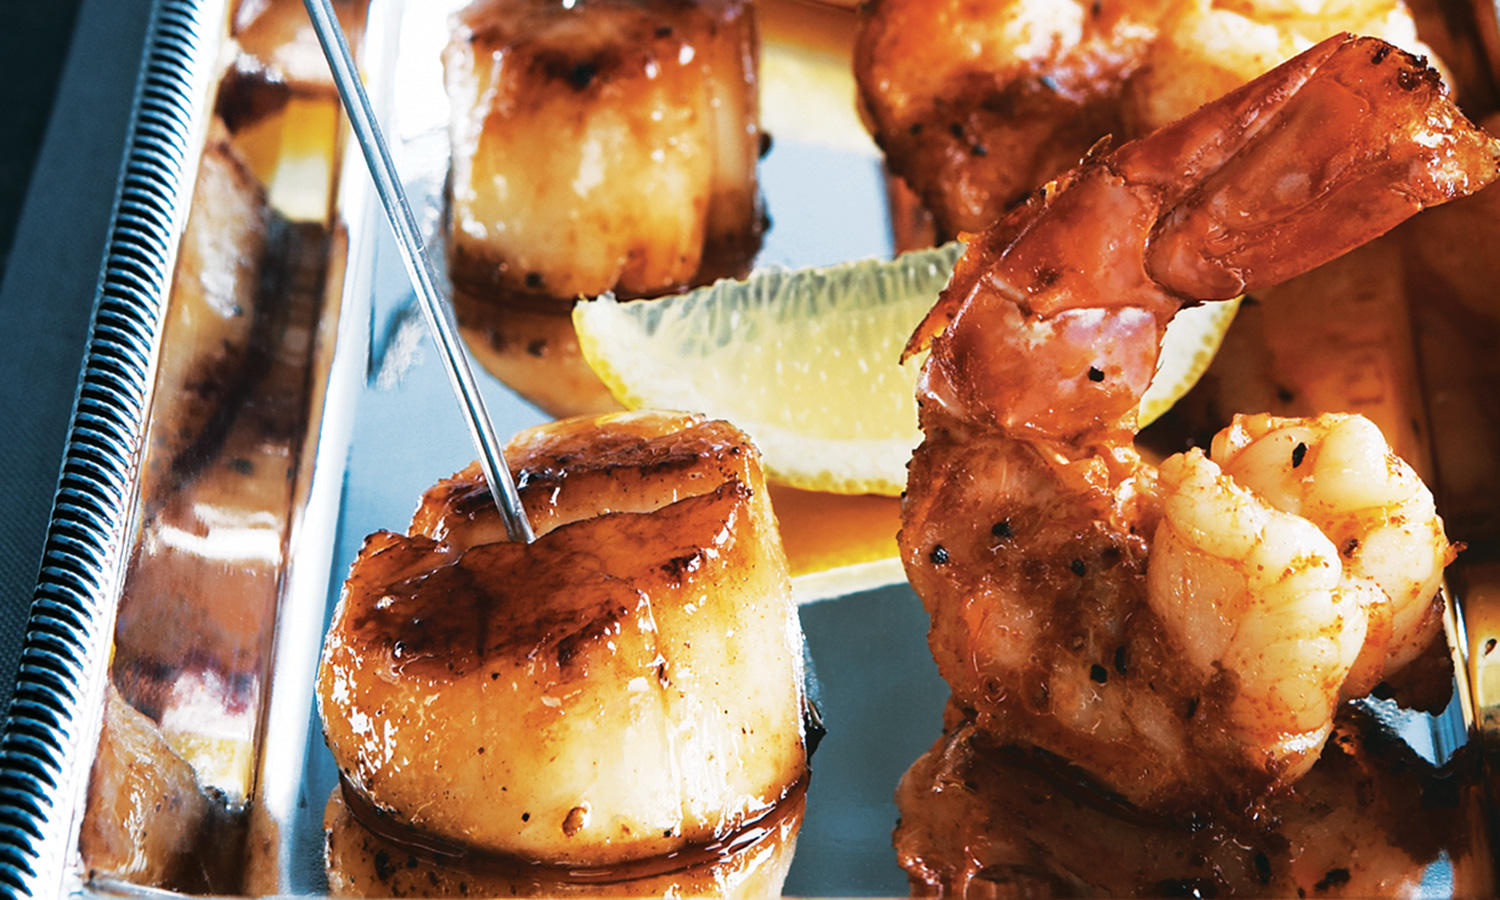 Sobeys | Maple Glazed Scallops